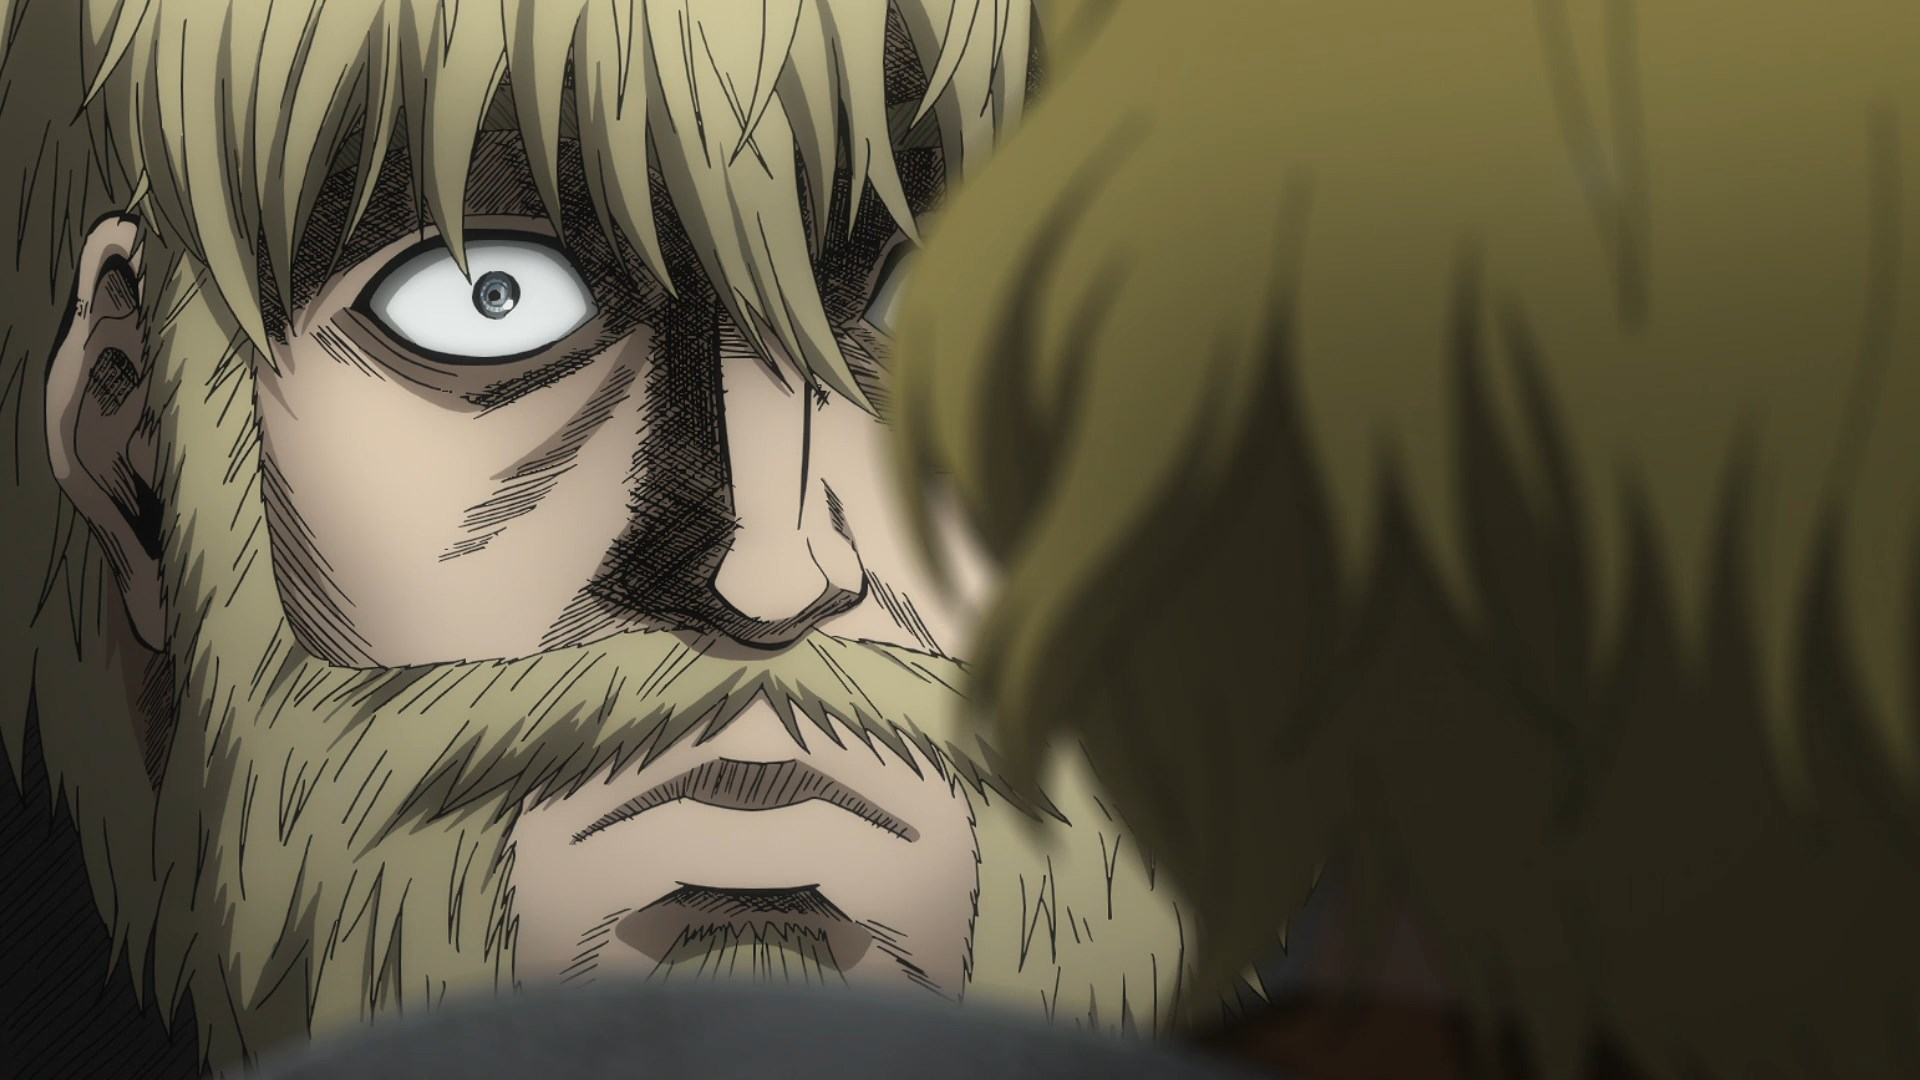 Release date for Vinland Saga Chapter 175, Spoilers alert, Raw scans, and everything need to know.